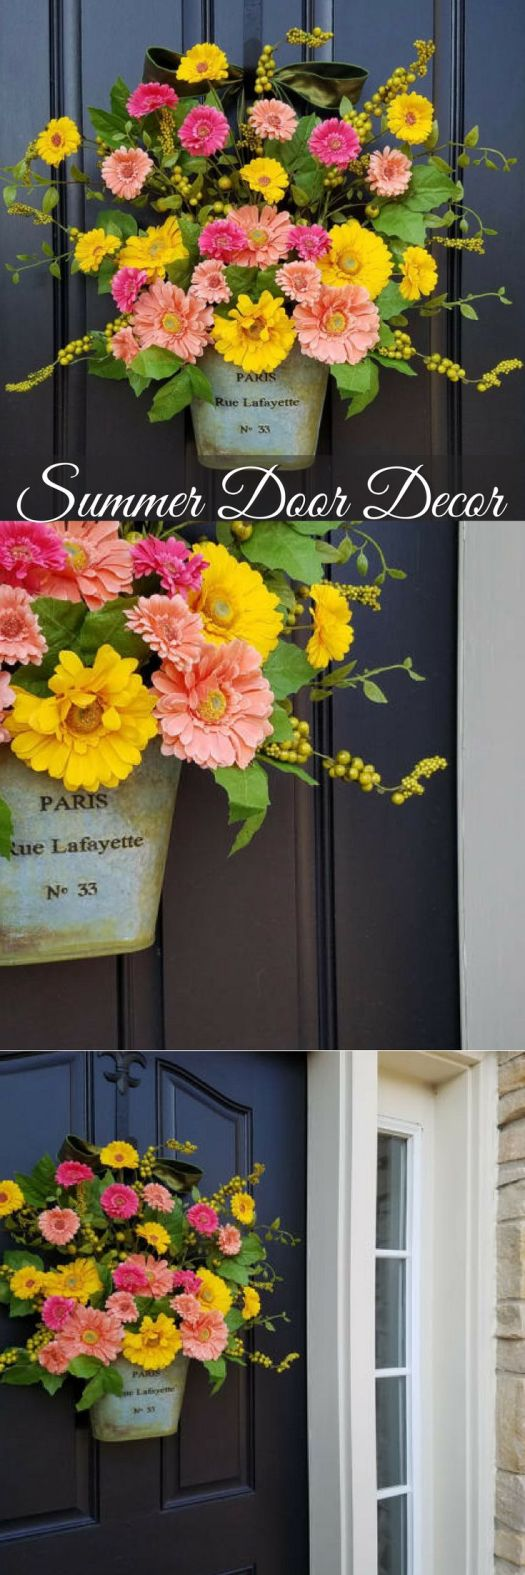 I love this idea for summer door decor in place of a wreath... a bouquet of flowers for your front door! So pretty! I love Gerber daisies! So pretty... Check out all of the wreaths that craft evangelist found for every month of the year!